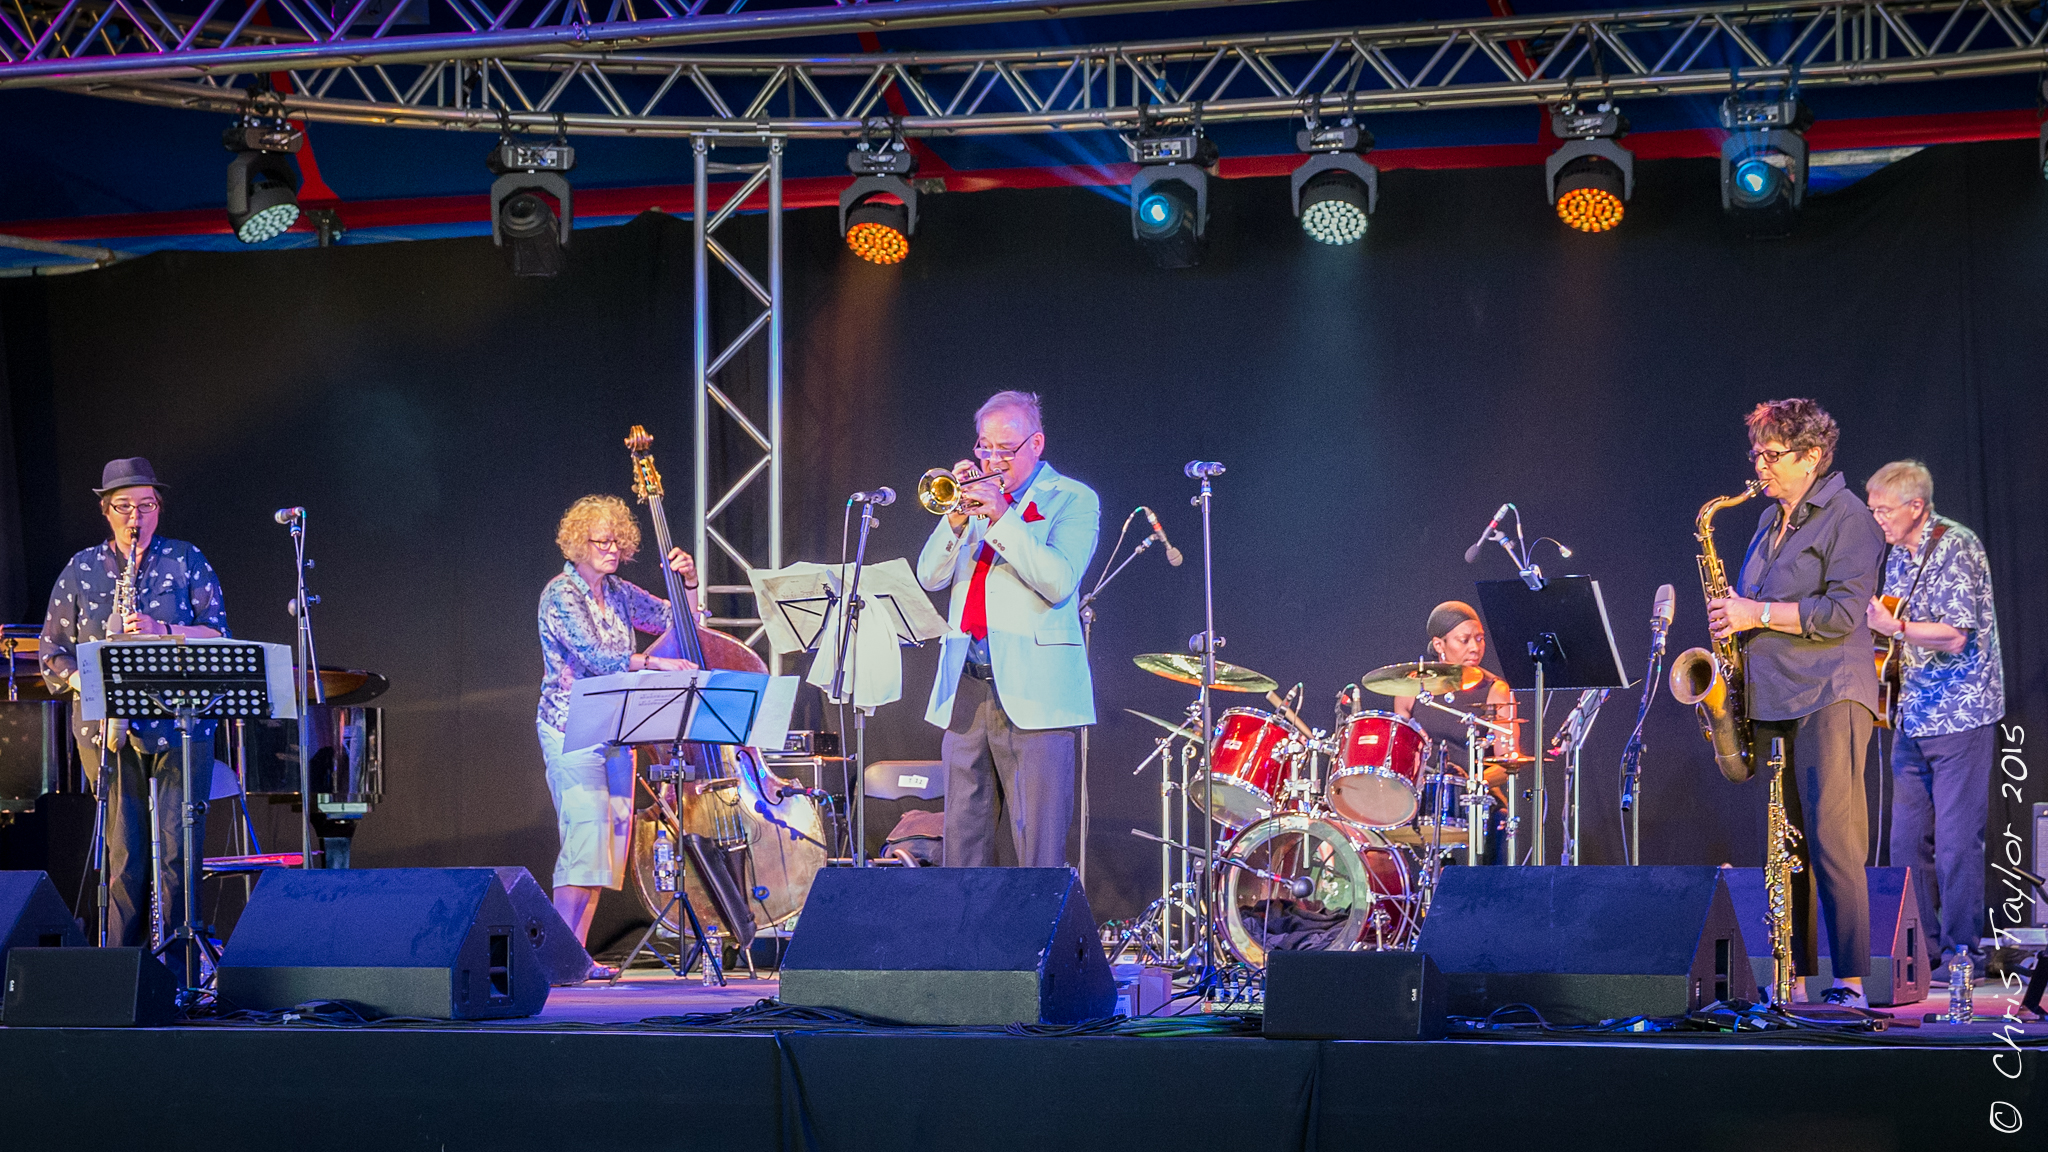 Chris Hodgkins And His Band Ealing Jazz Festival 1st August 2015